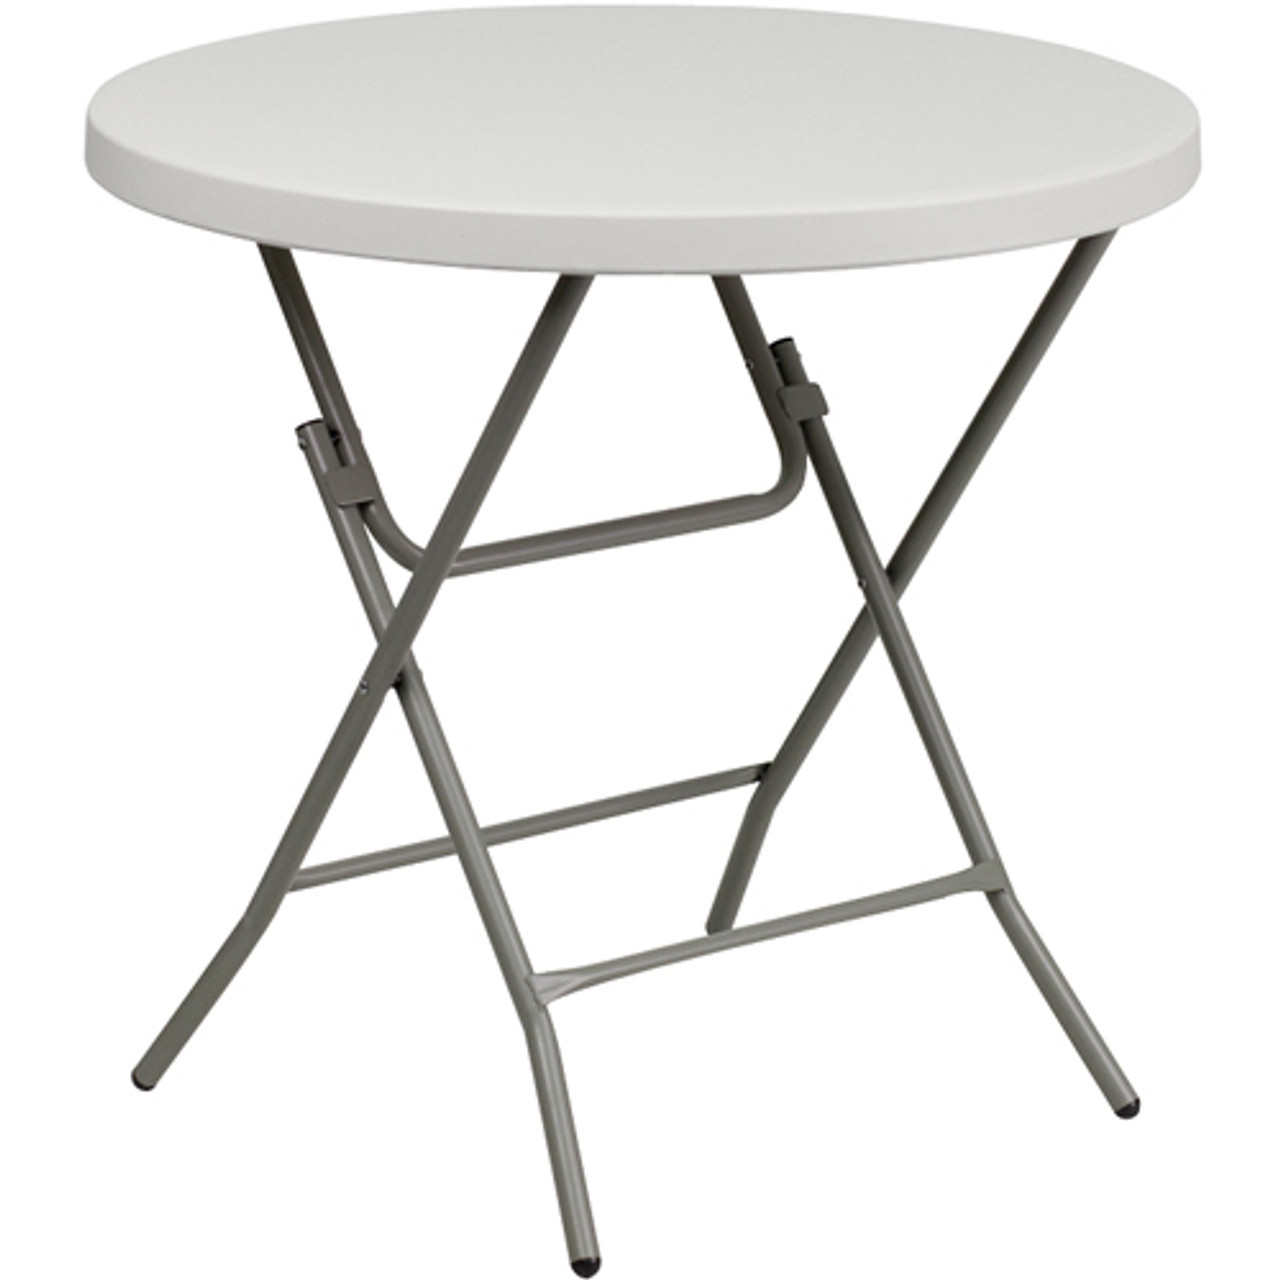 Advantage 32 In Round White Plastic Folding Table Adv 32rlz White White Granite